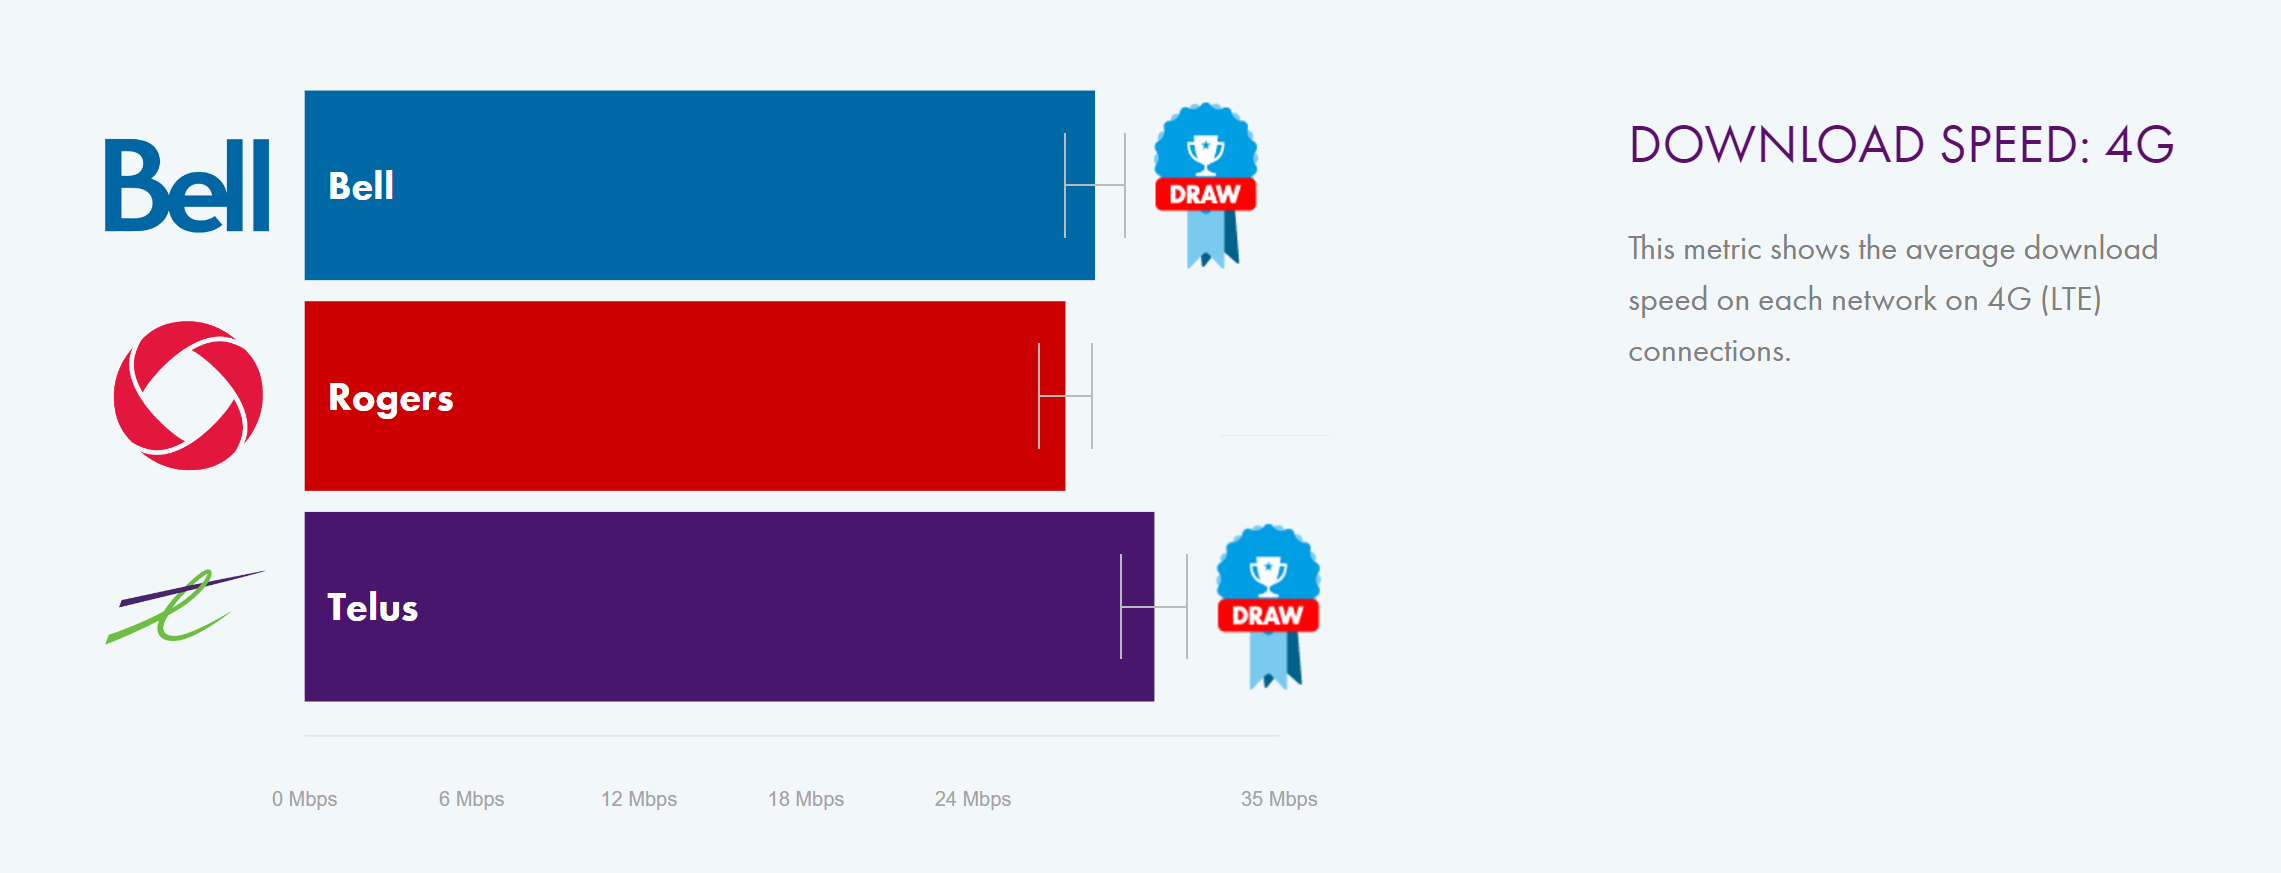 Telus leads Rogers and Bell in network speeds, according to